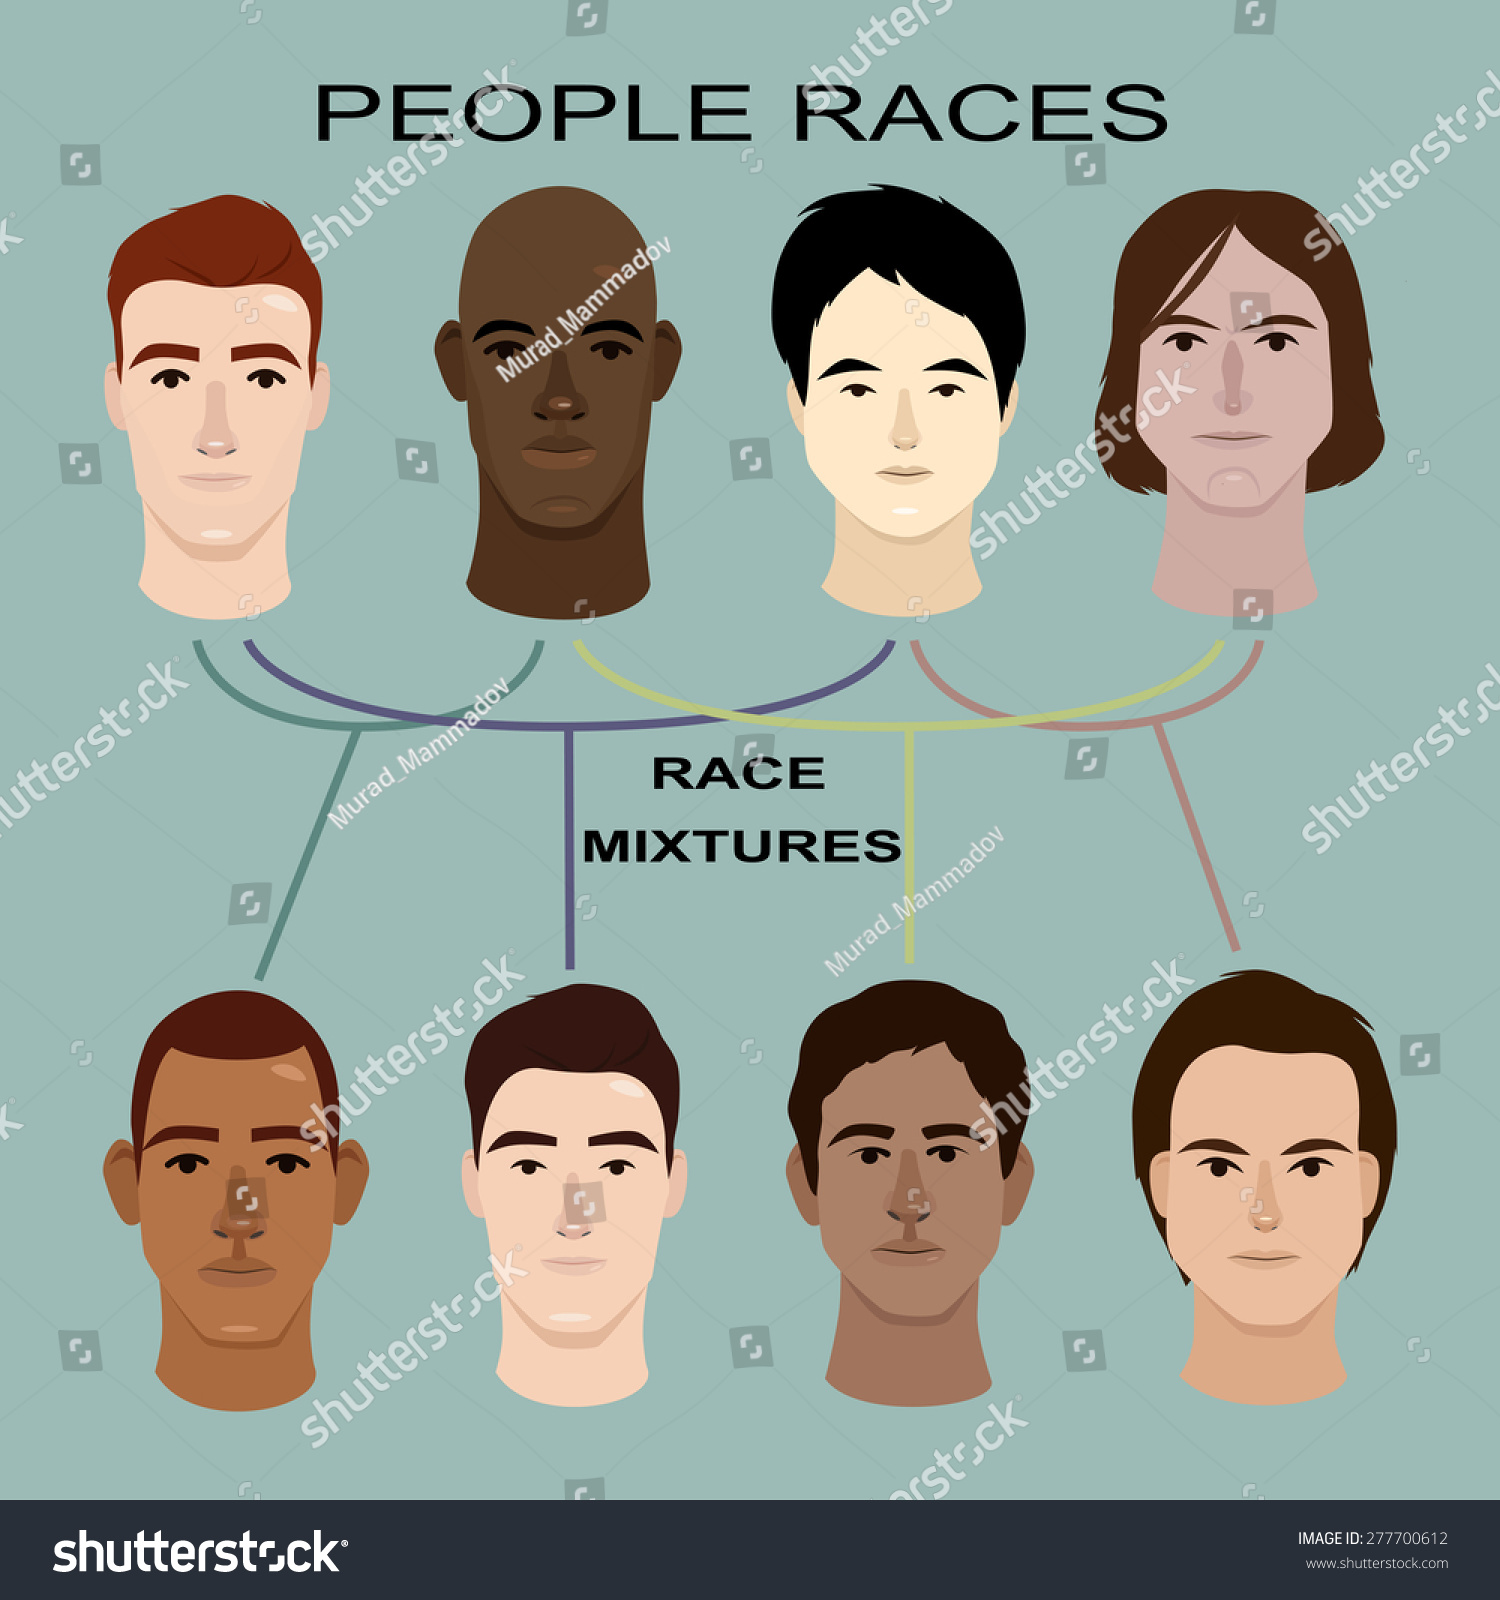 The three human races